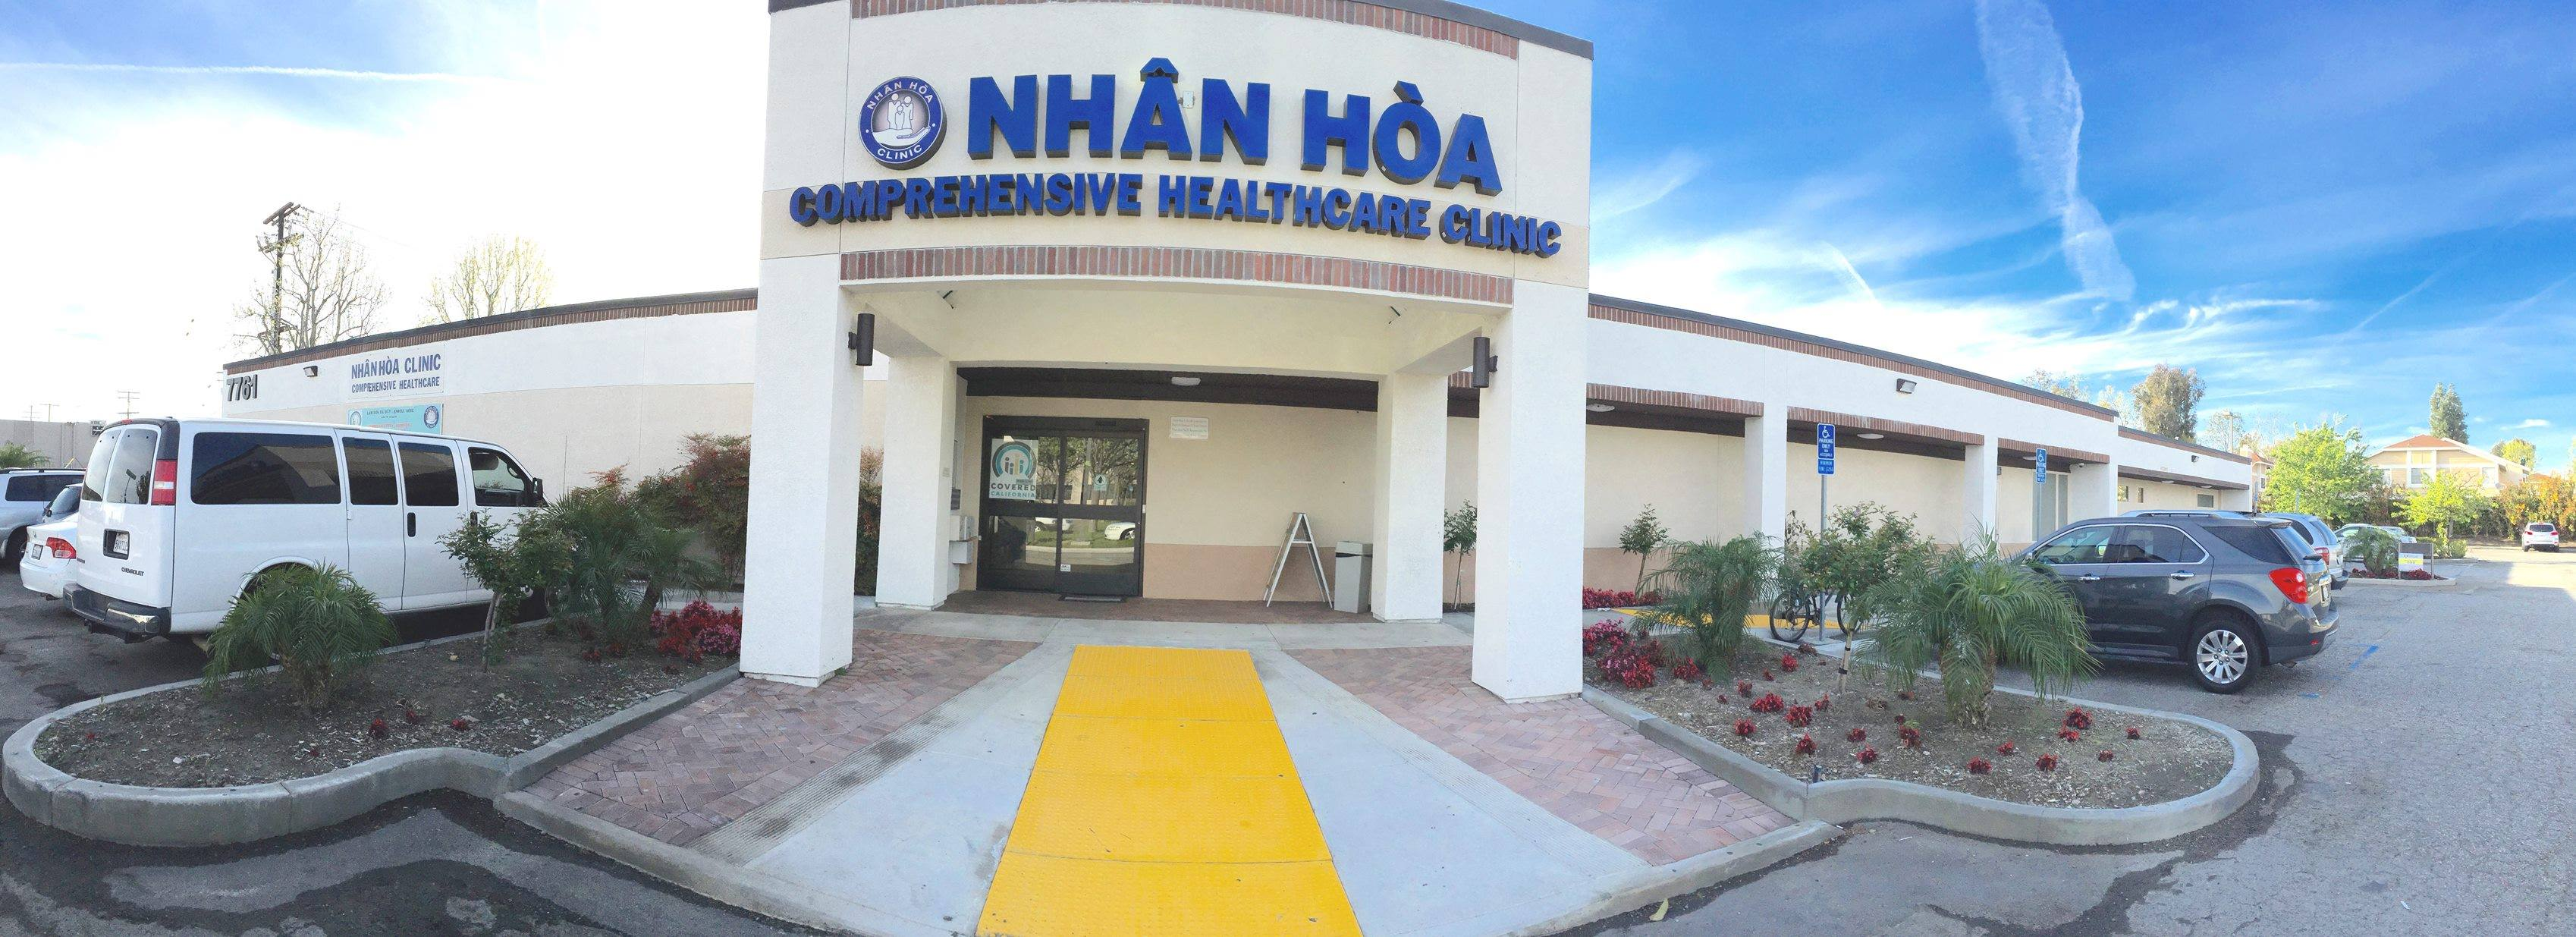 Nhan Hoa Comprehensive Healthcare Clinic